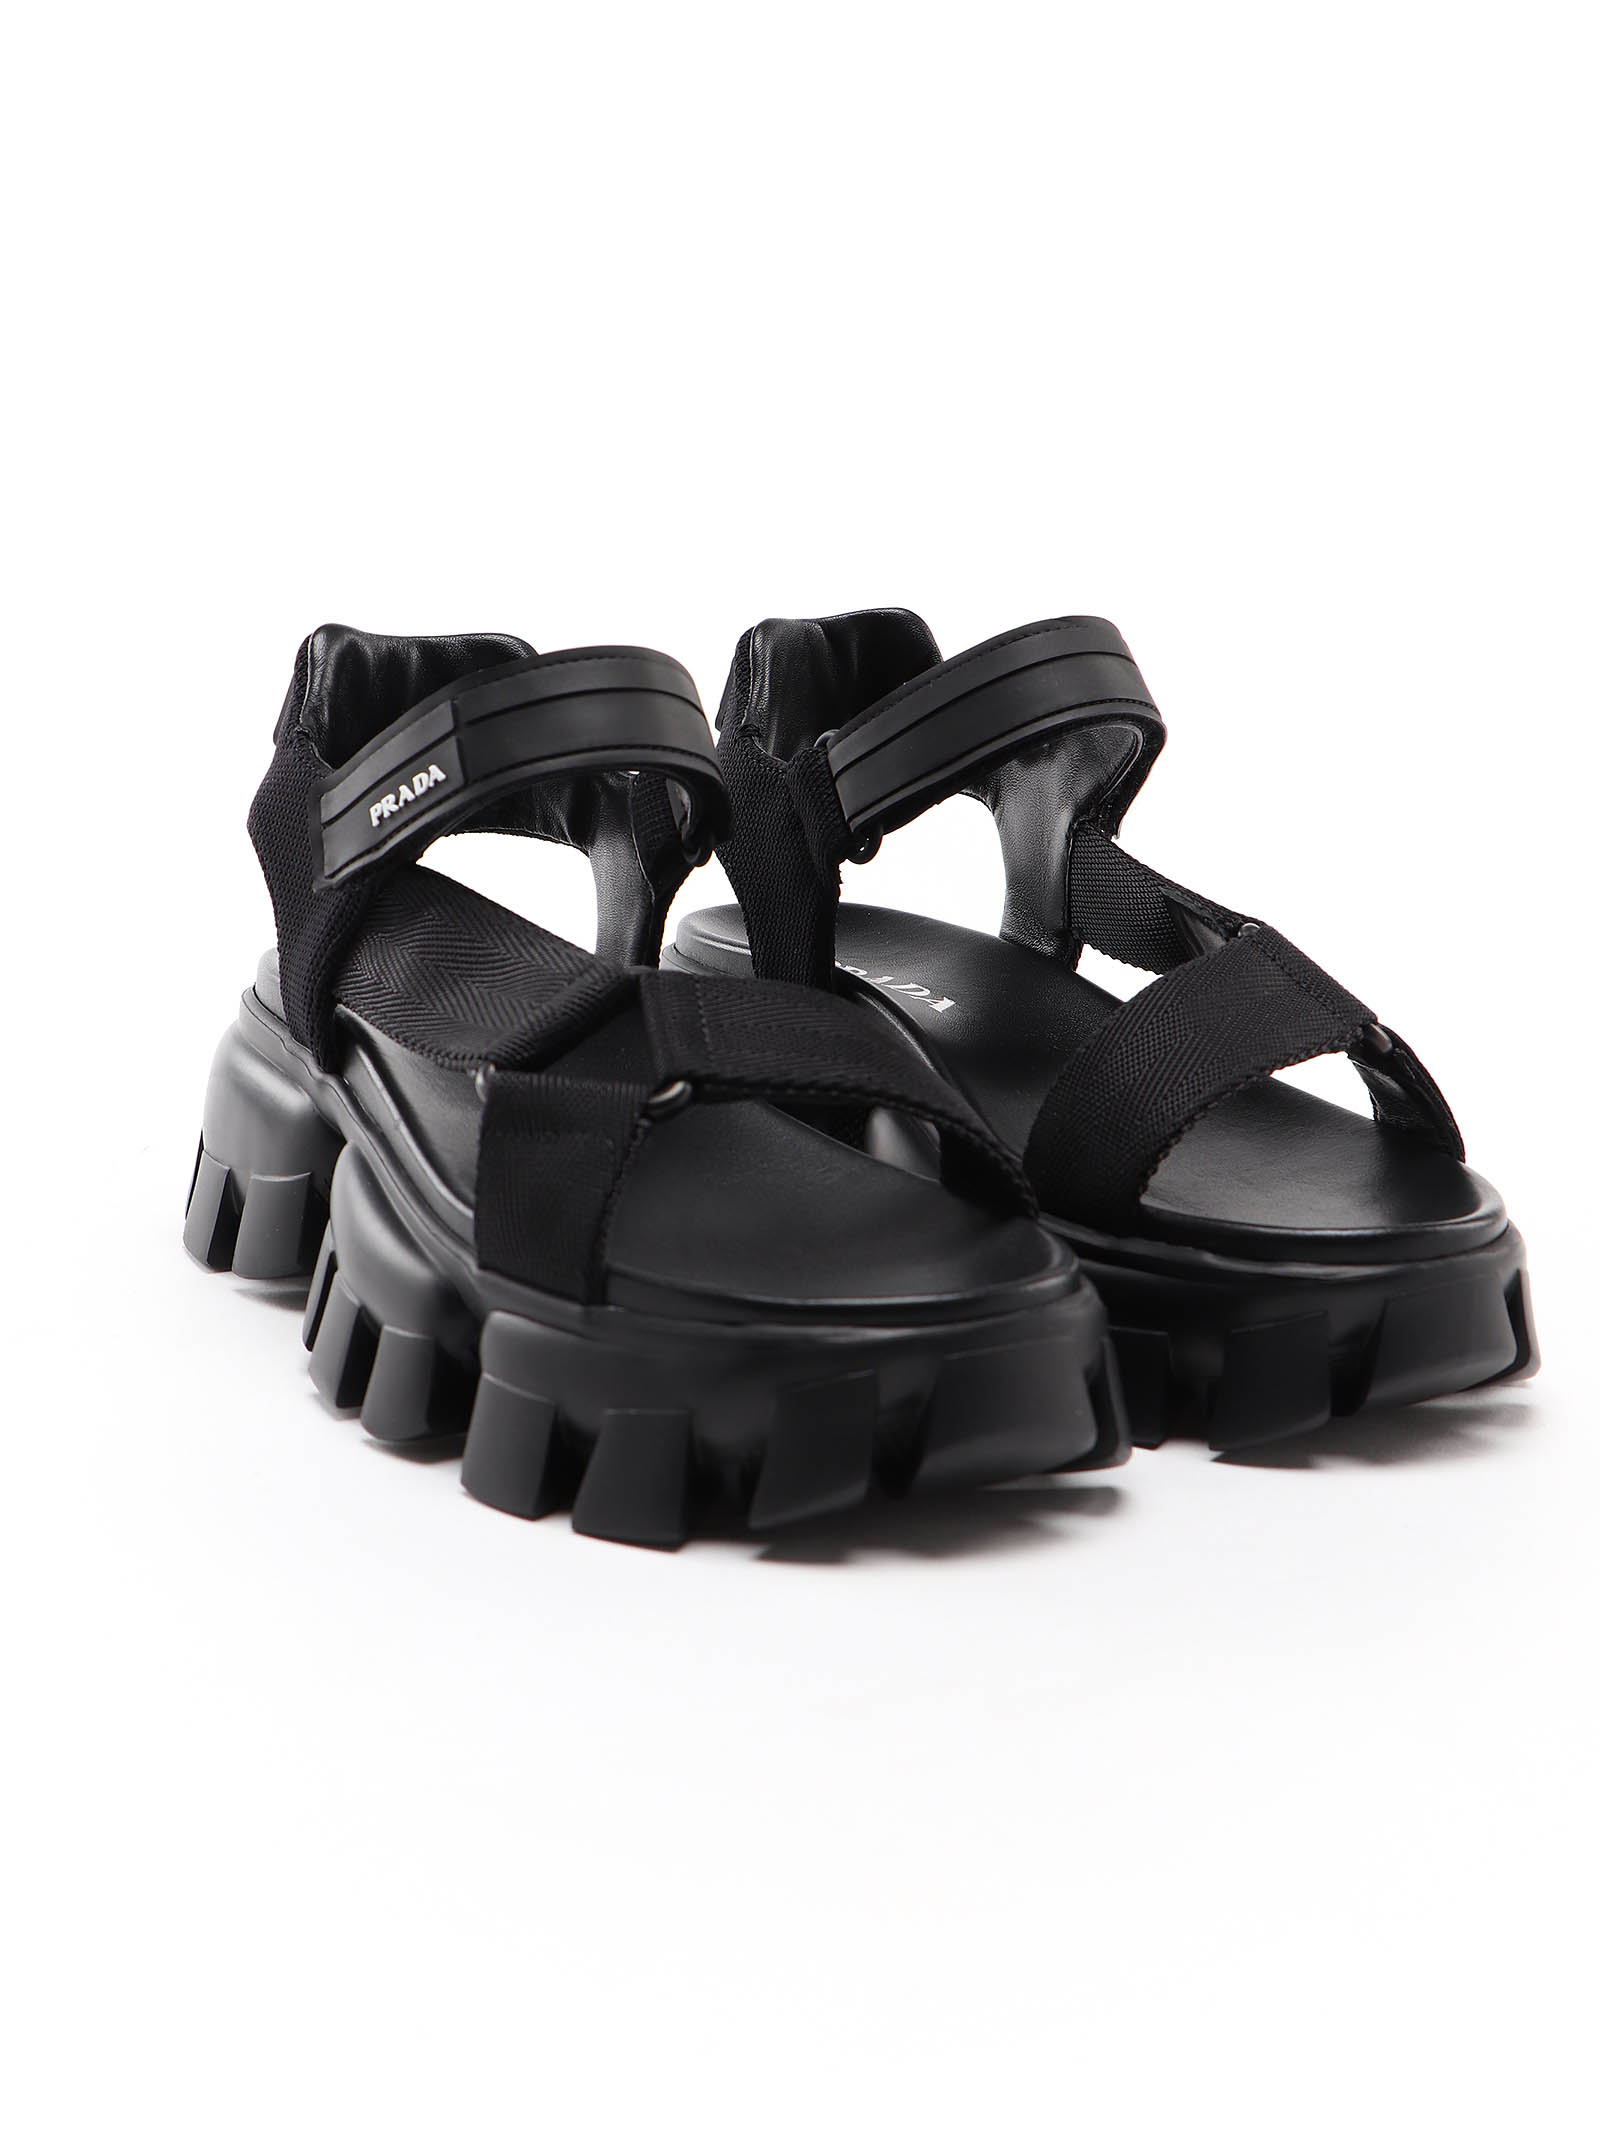 Immagine di Prada | Cloudbust Thunder Sandals